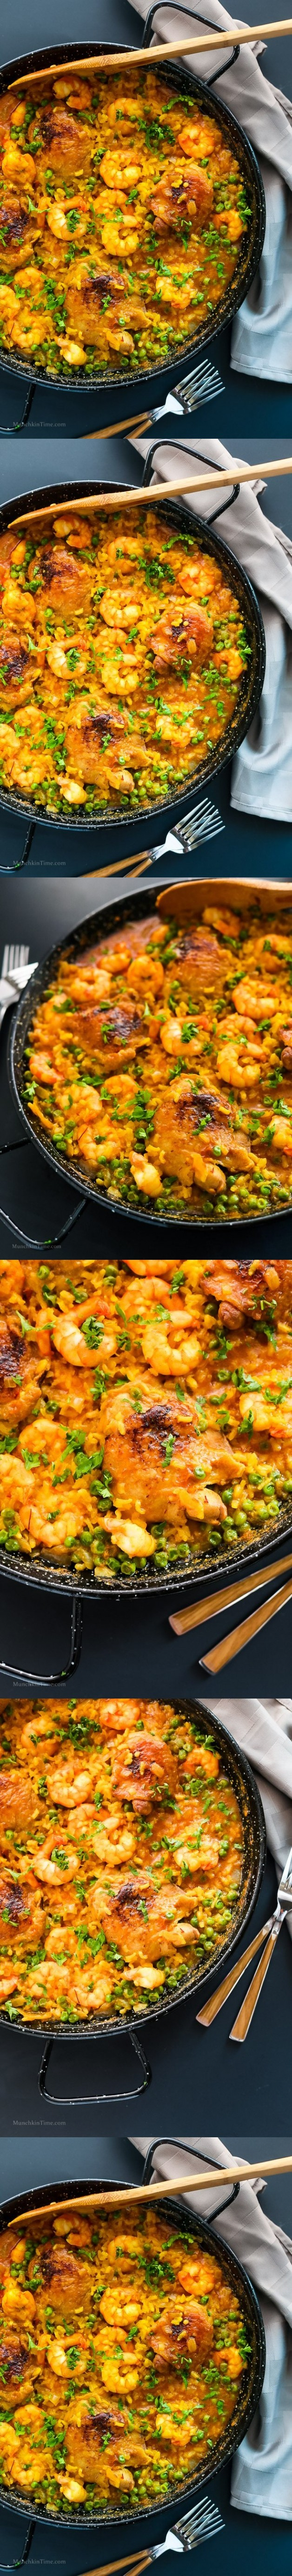 Chicken Thighs And Shrimp Paella Recipe Munchkin Time